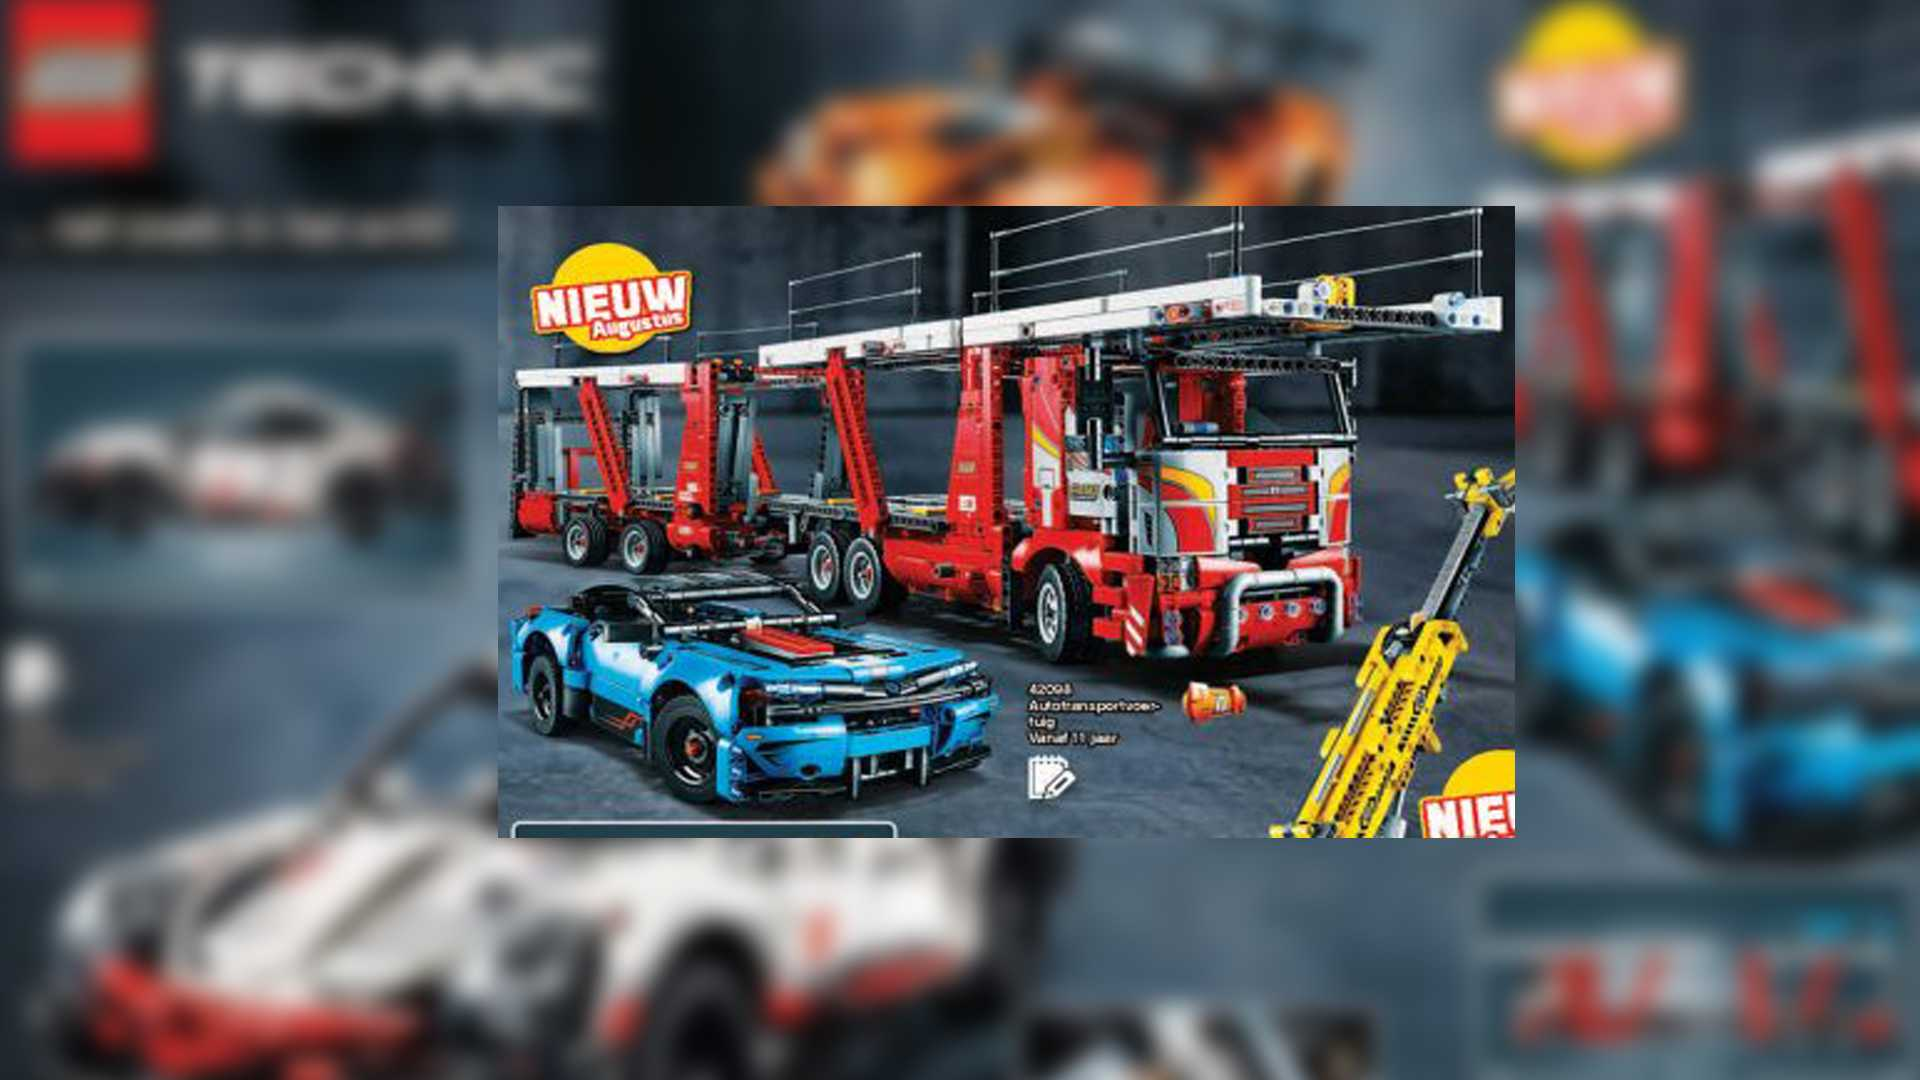 New Lego Technic Sets 2020 New Lego Porsche 911, Car Carrier And Technic Kits Coming Soon